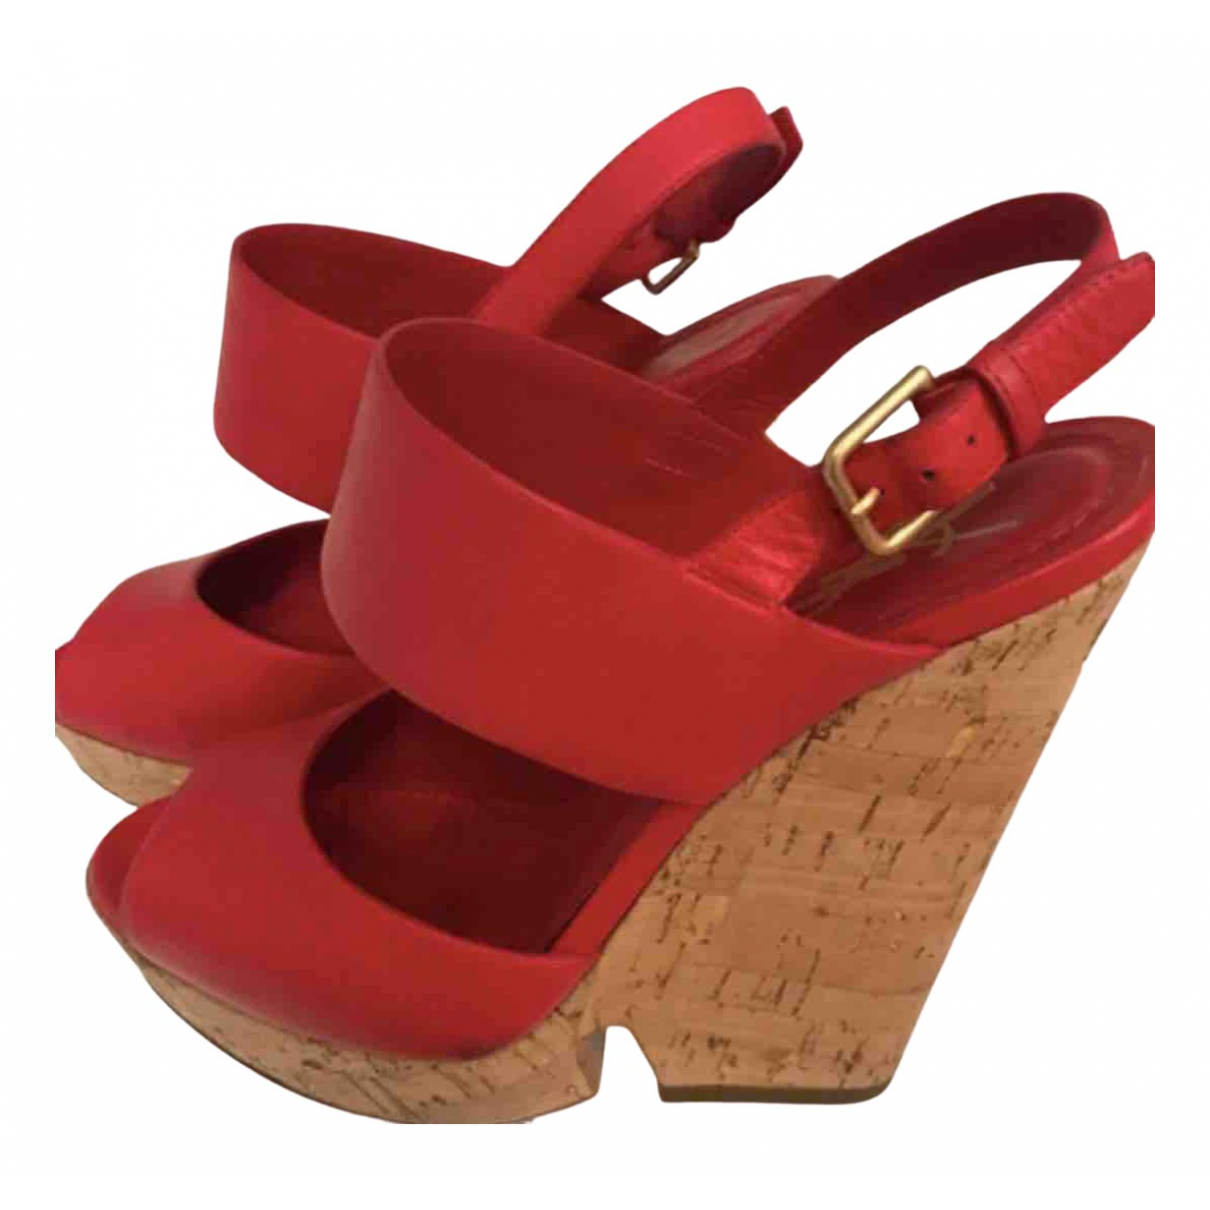 Yves Saint Laurent \N Red Leather Sandals for Women 36 EU